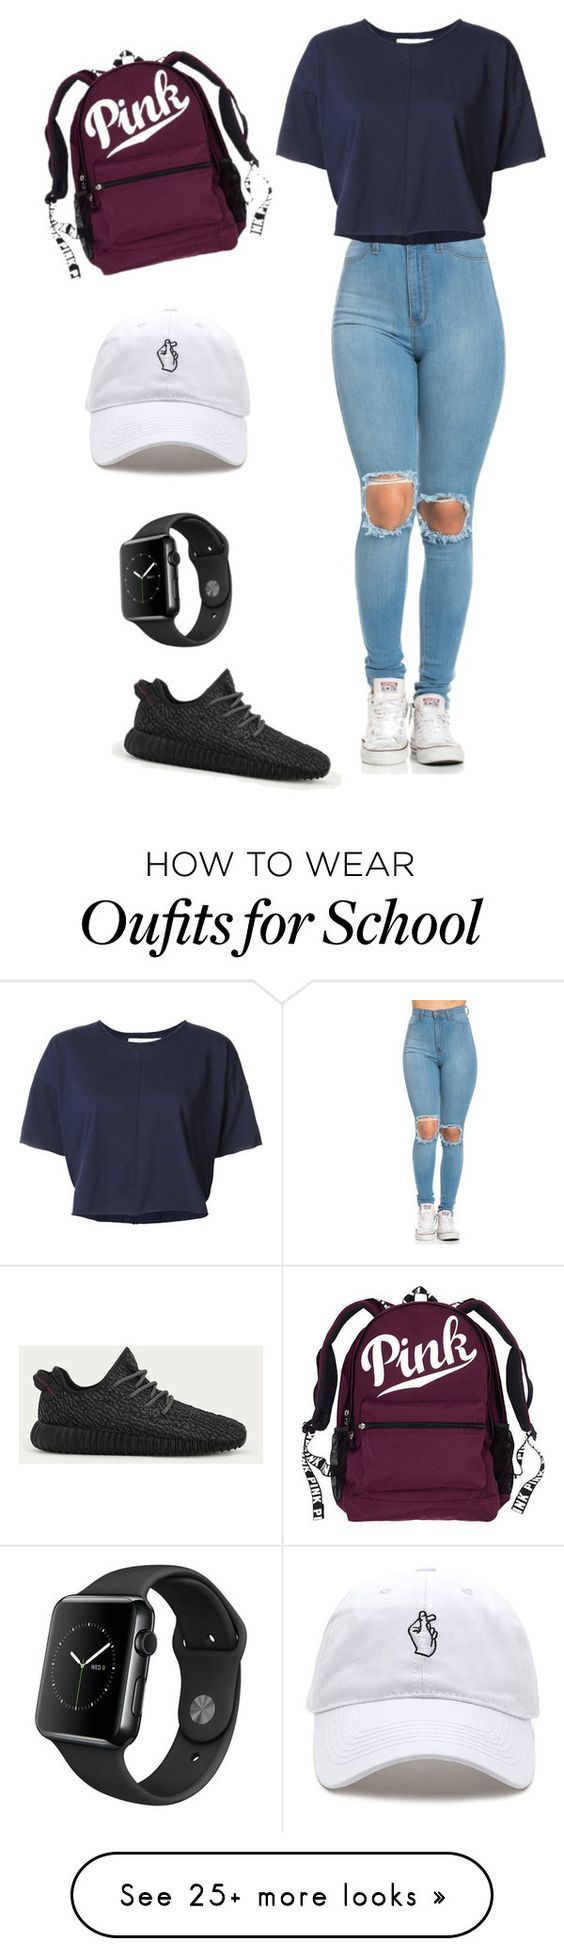 """""""Simple outfit for school"""" by yaire787 on Polyvore featuring daniel patrick and adidas"""